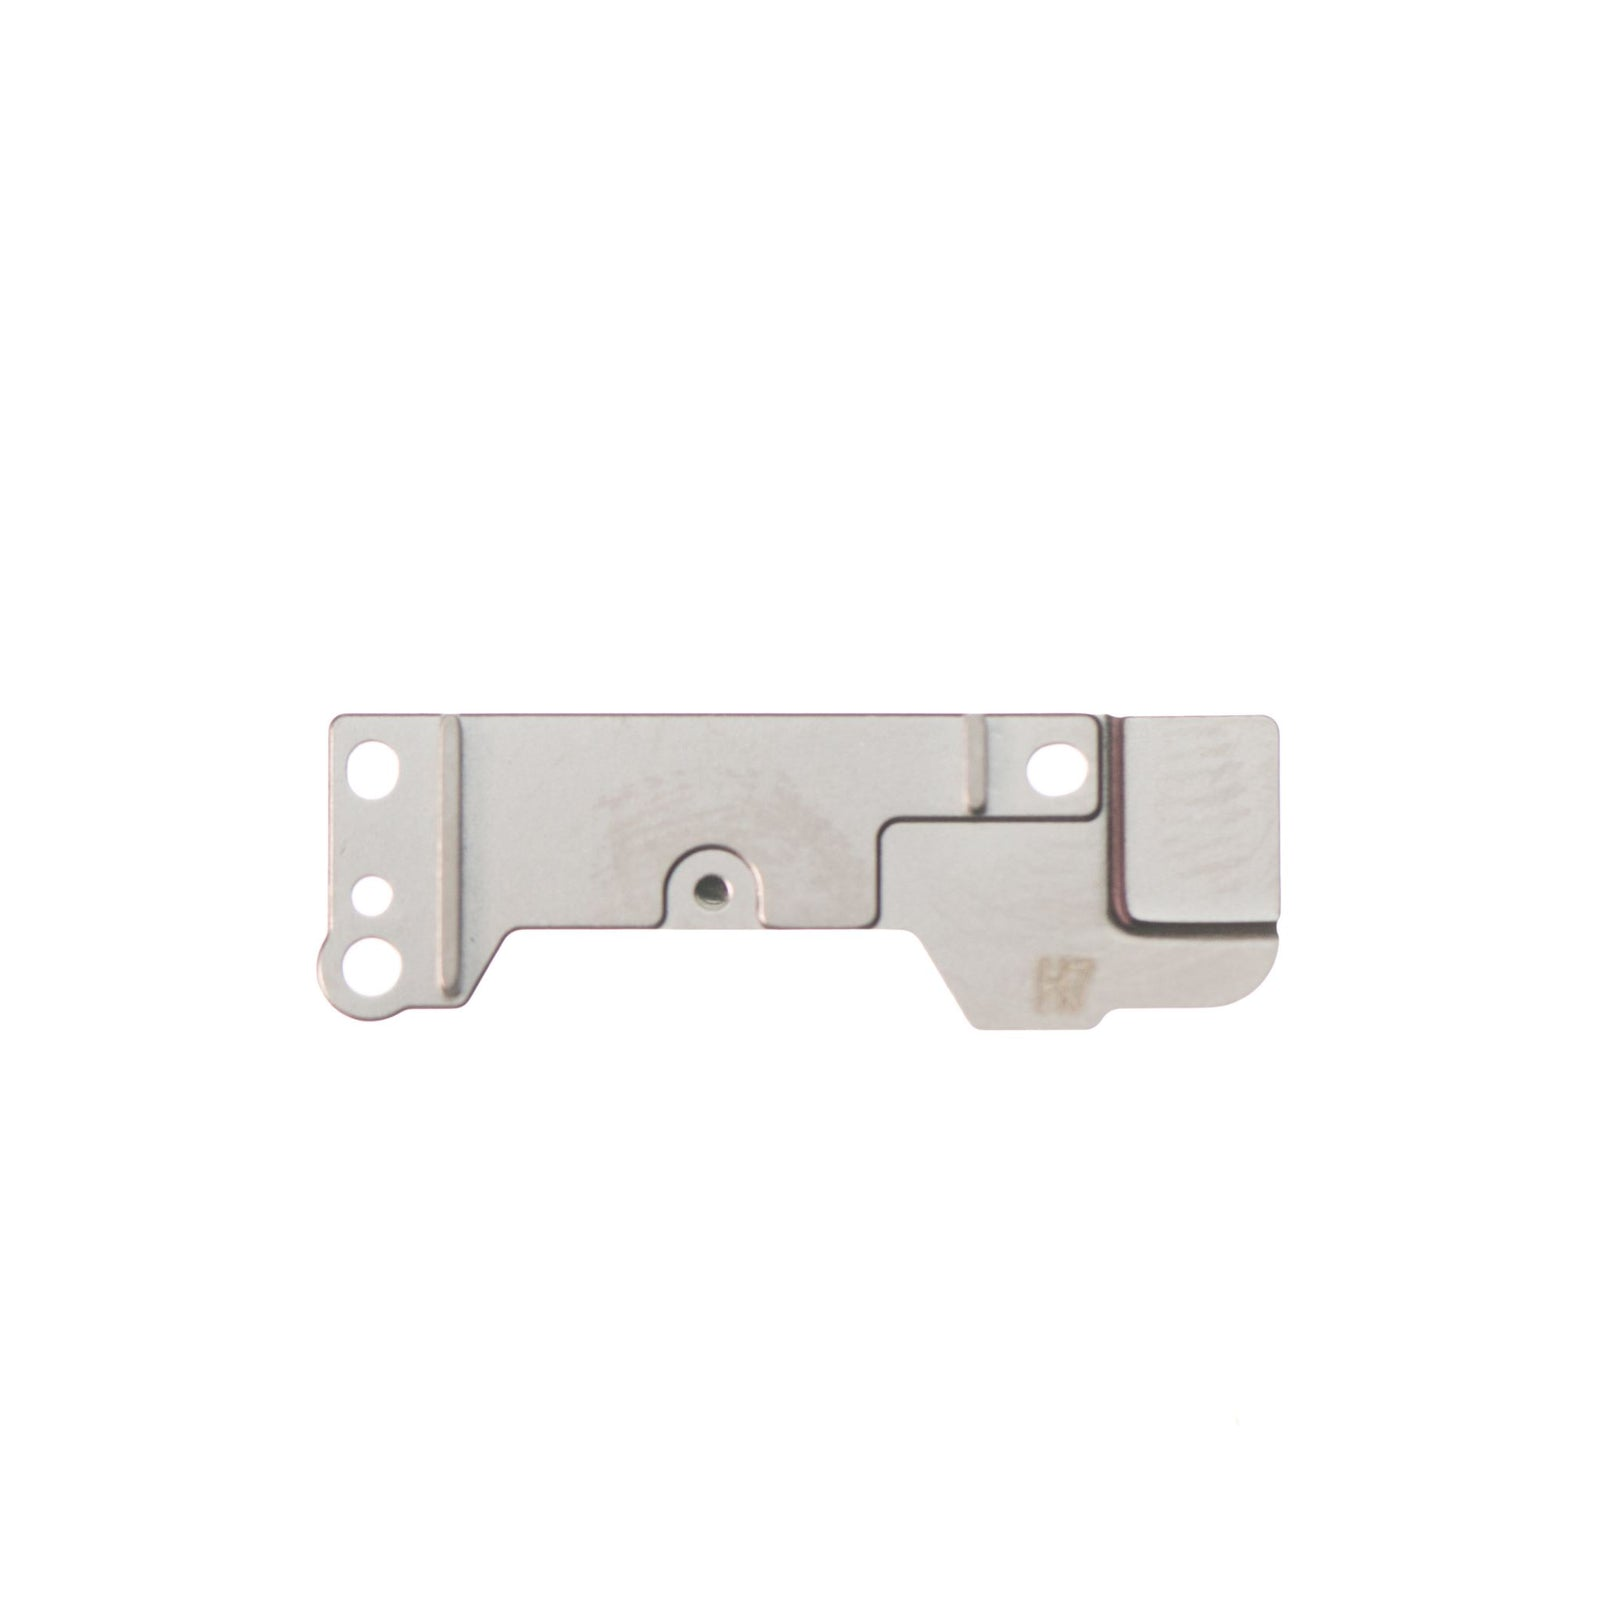 822-10095_etech_parts_wholesale_iphone_6s_home_button_bracket_6774-edit_RVHE3IWVEJ1Q.jpg